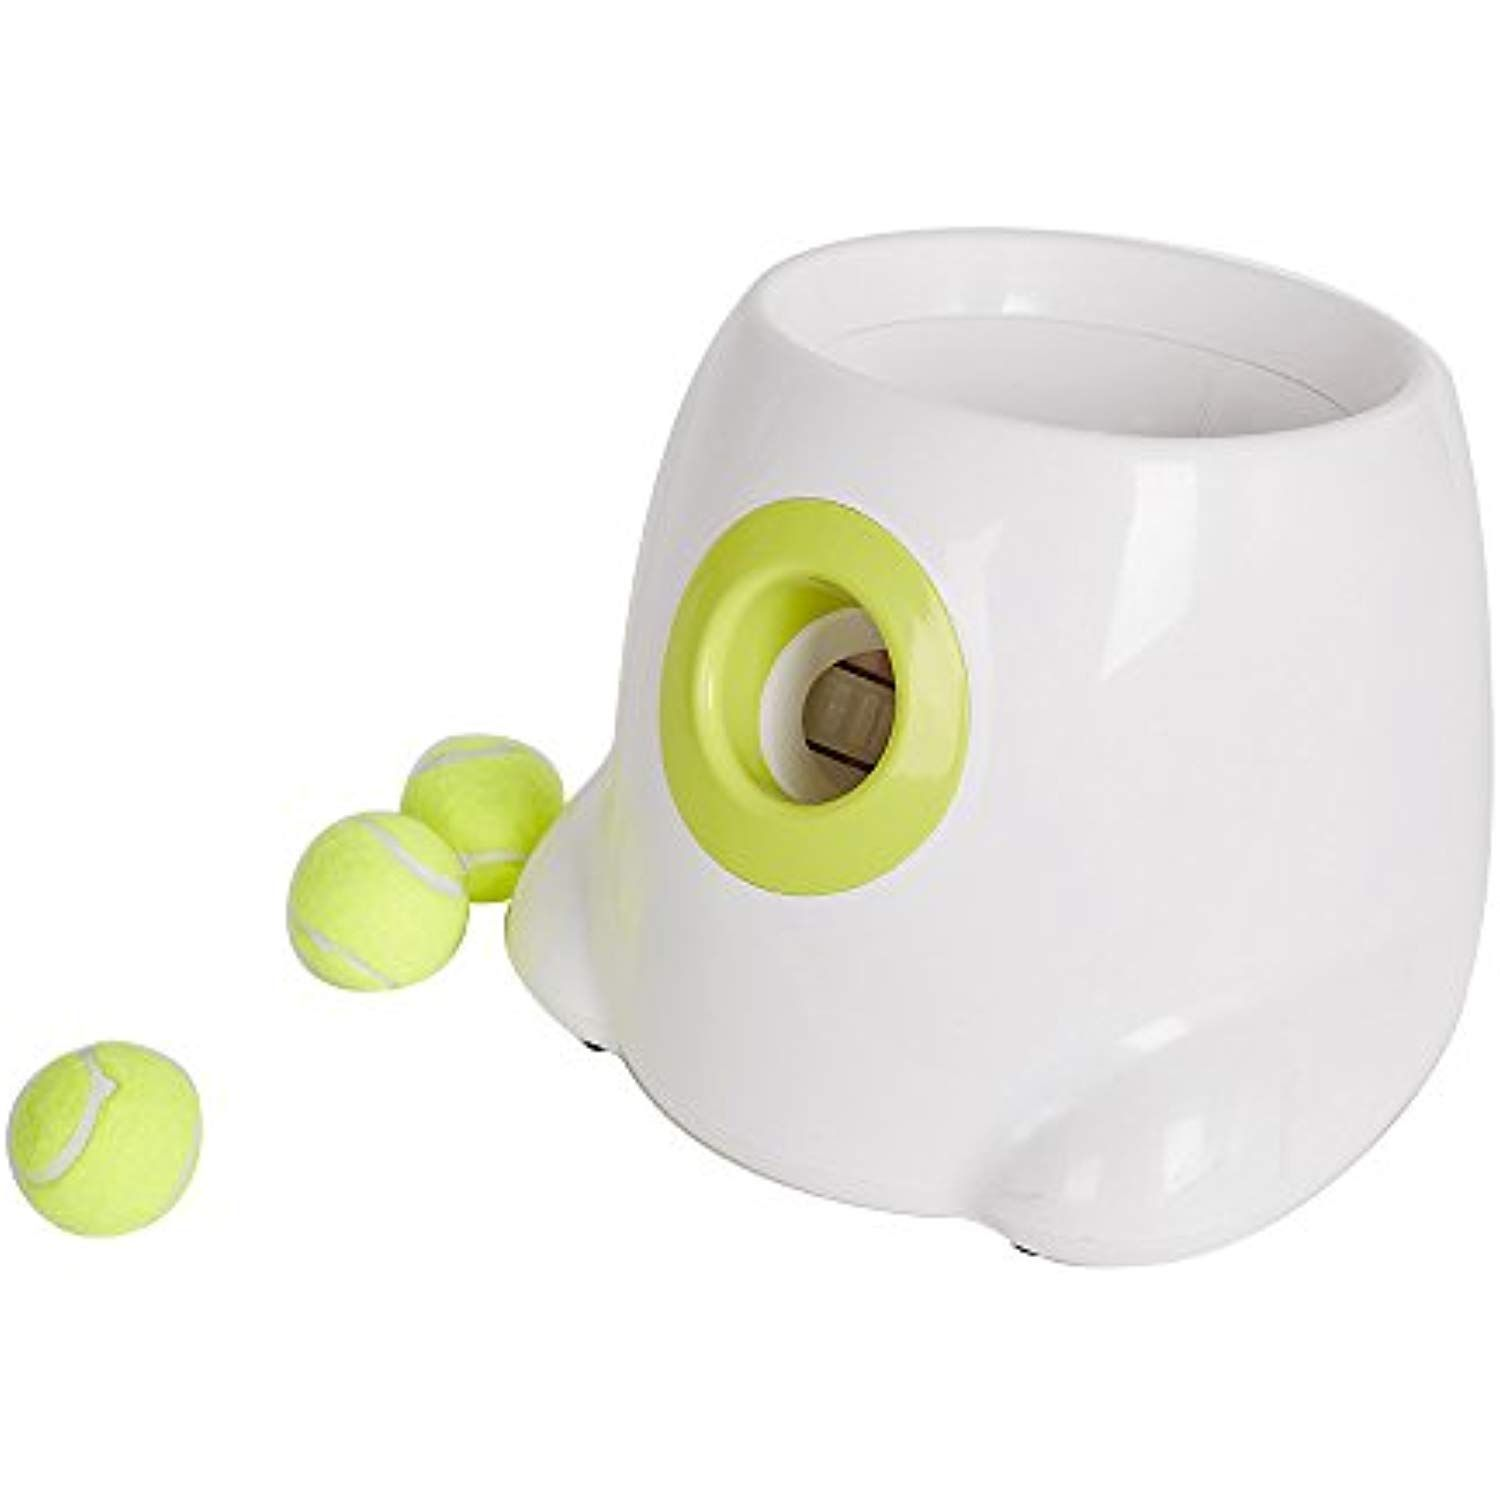 Karmas Product Interactive Ball Launcher For Dogs With Tennis Balls Tennis Ball Throwing Machine For Trainning With Images Dog Toy Ball Ball Launcher Ball Throwing Machine